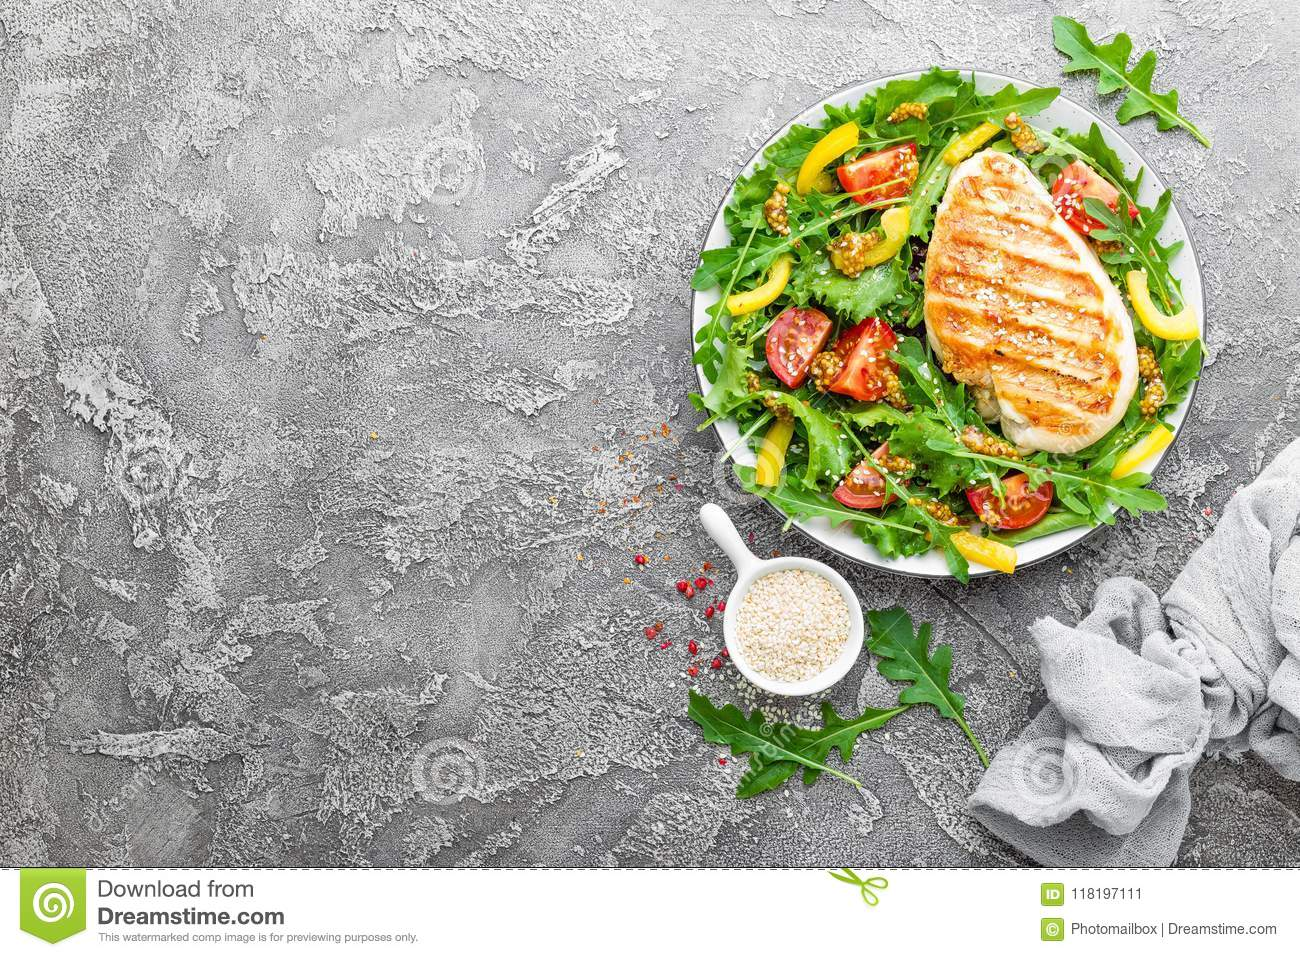 Chicken salad. Meat salad with fresh tomato, sweet pepper, arugula and grilled chicken breast. Chicken fillet with fresh vegetable